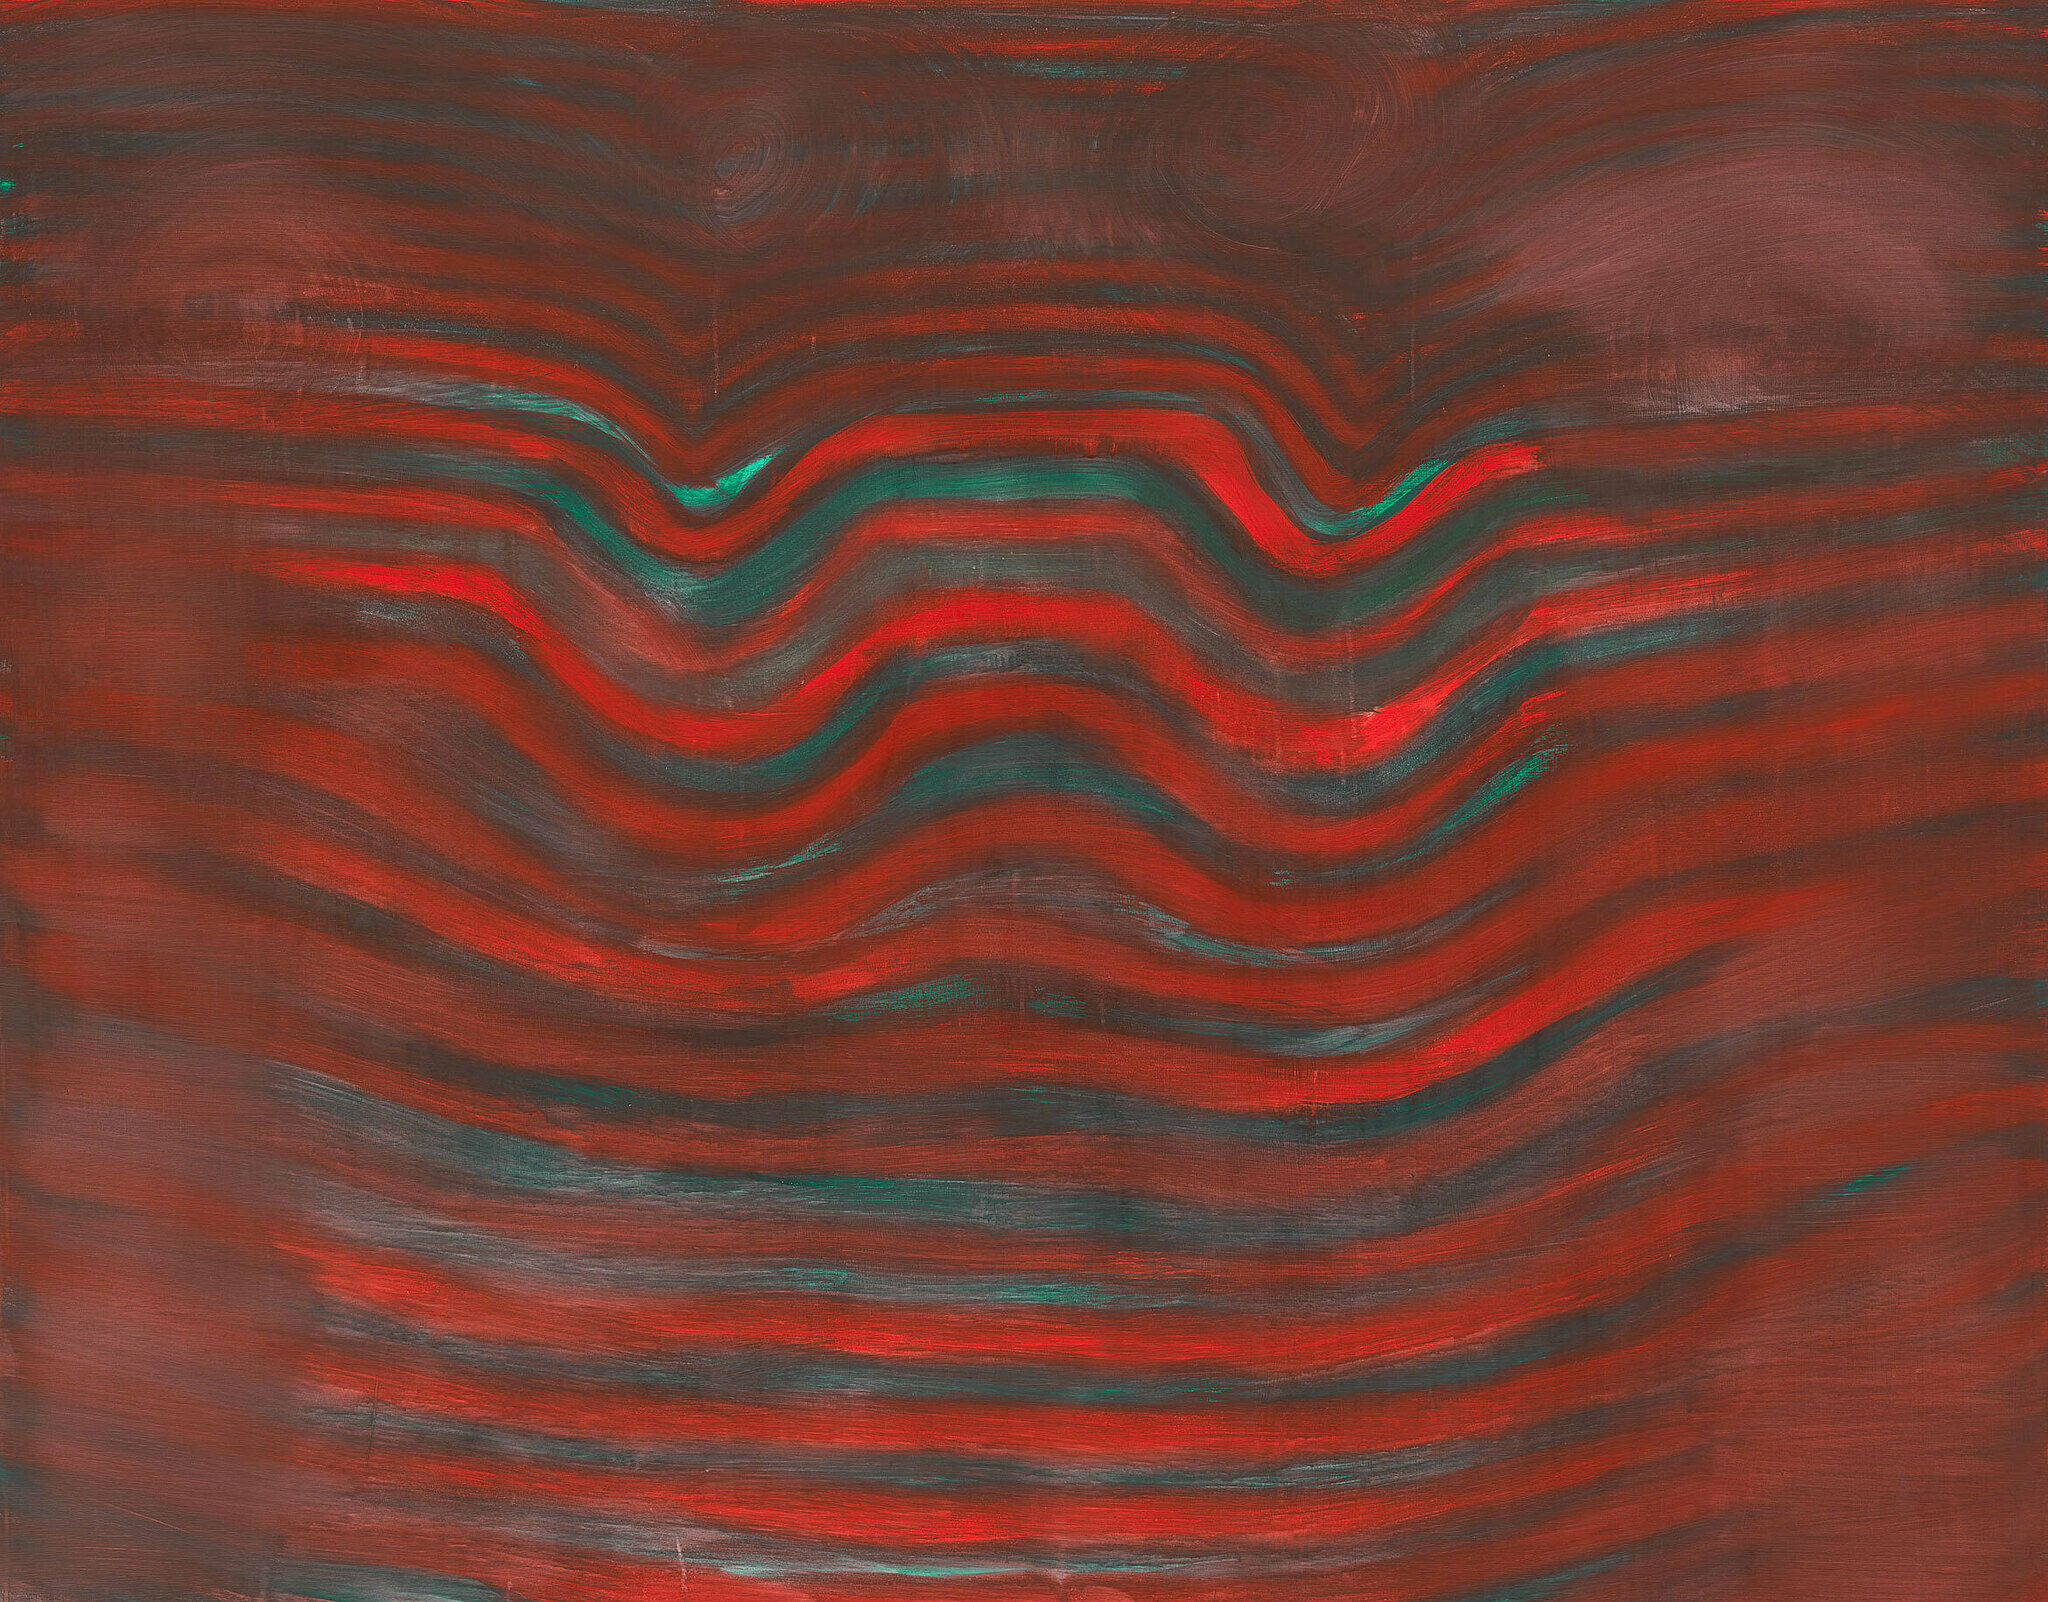 Wavy lines of turquoise and red.